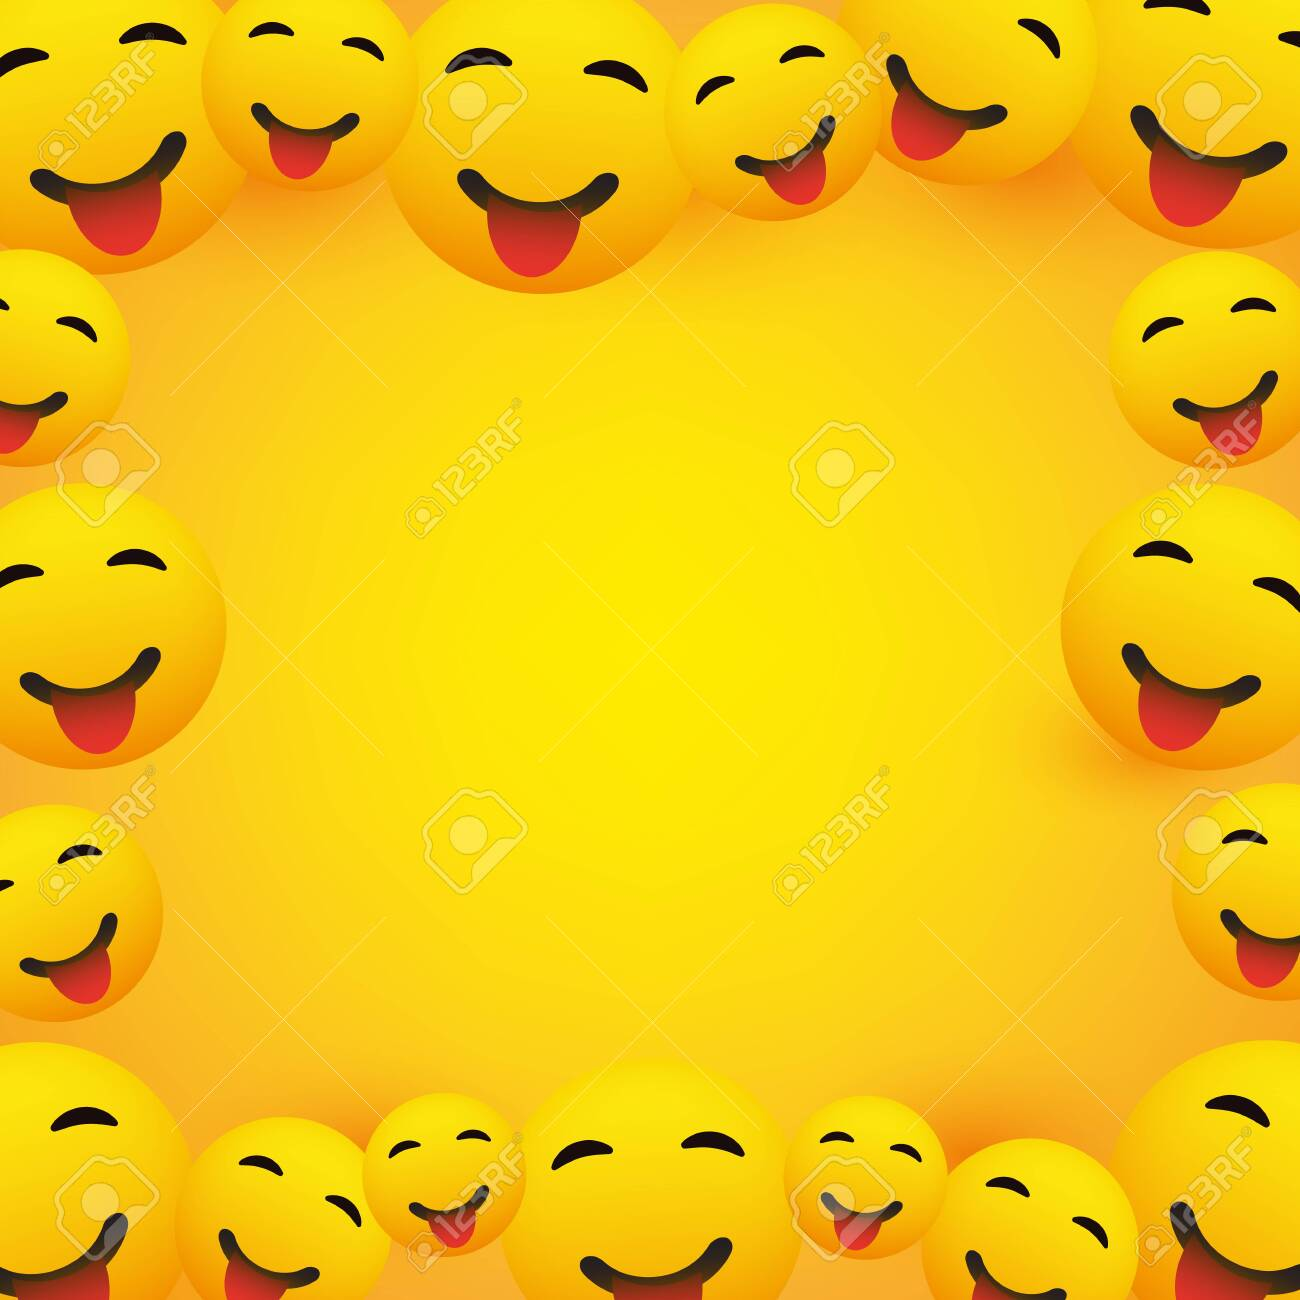 Background Frame With Smiling Emoji With Stuck Out Tongue Royalty Free Cliparts Vectors And Stock Illustration Image 126858552